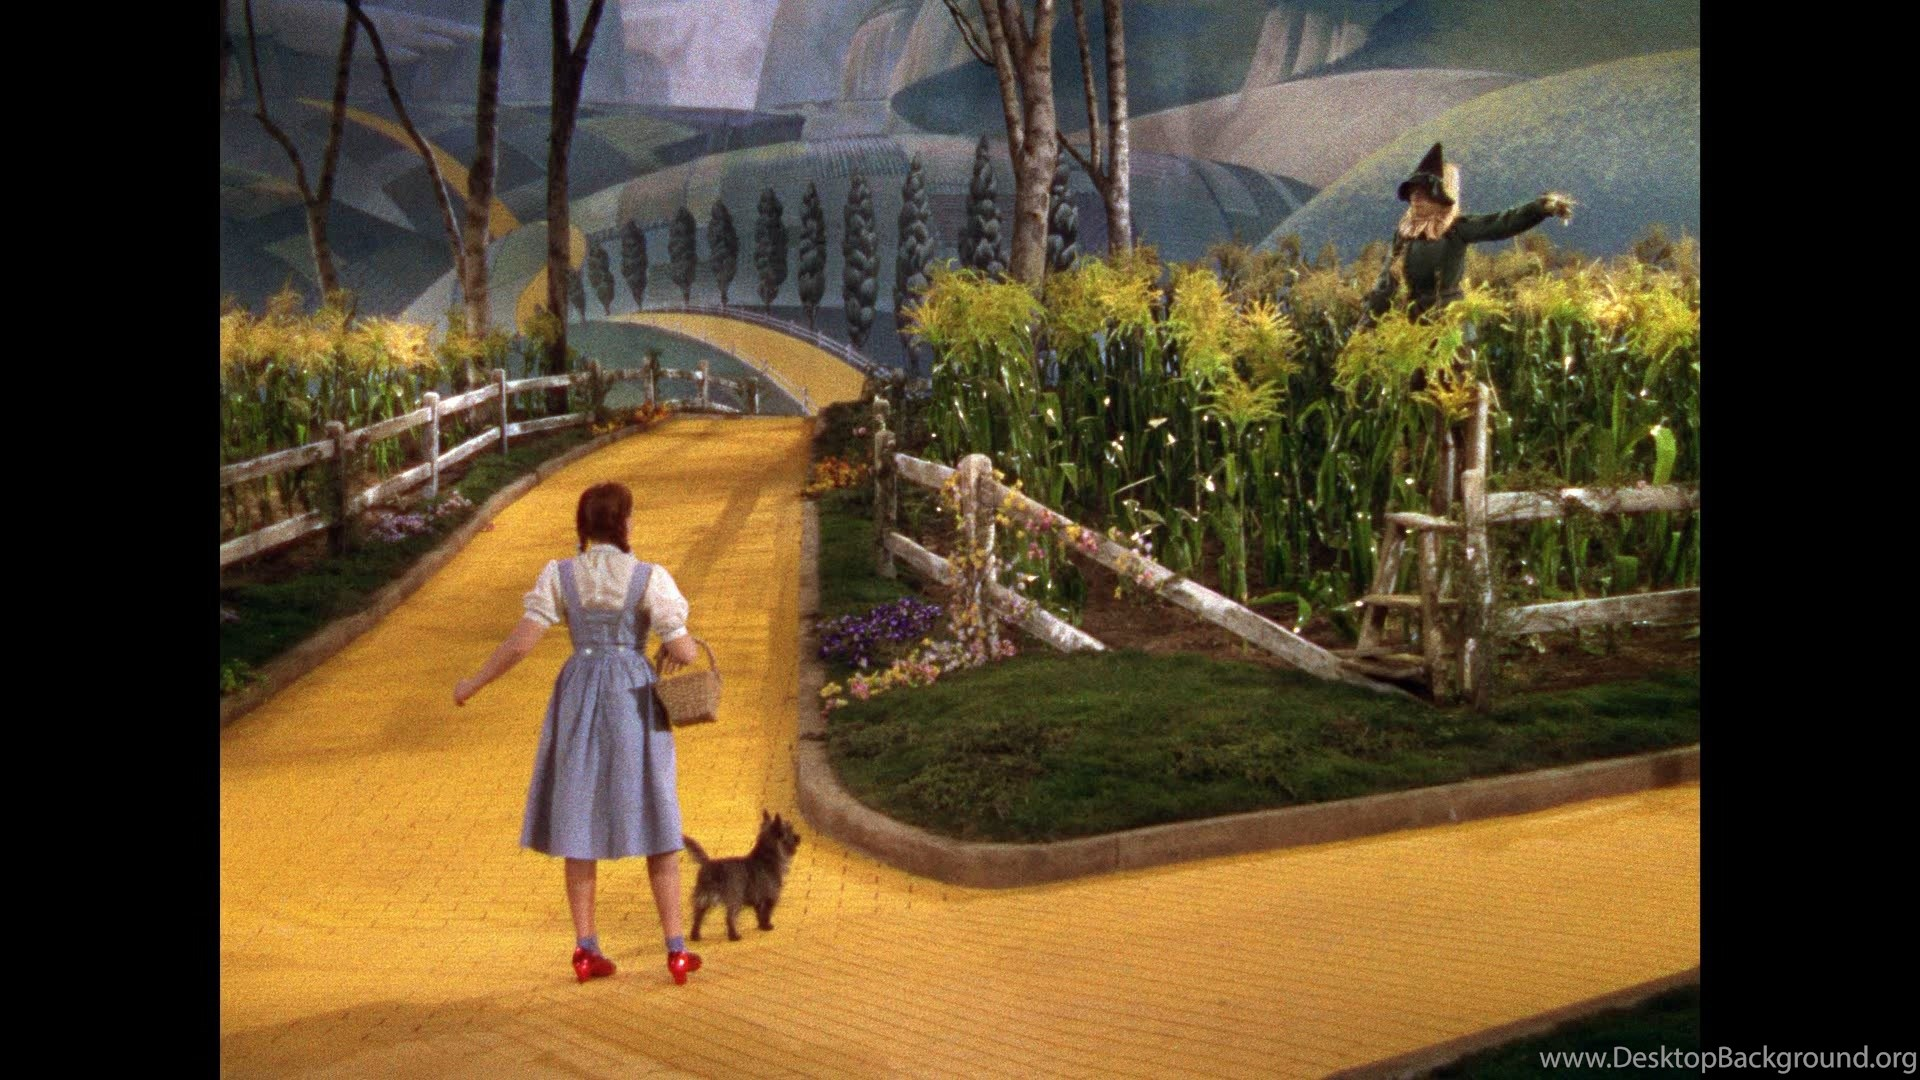 Wallpapers Wizard Of Oz The 1920x1080 Desktop Background